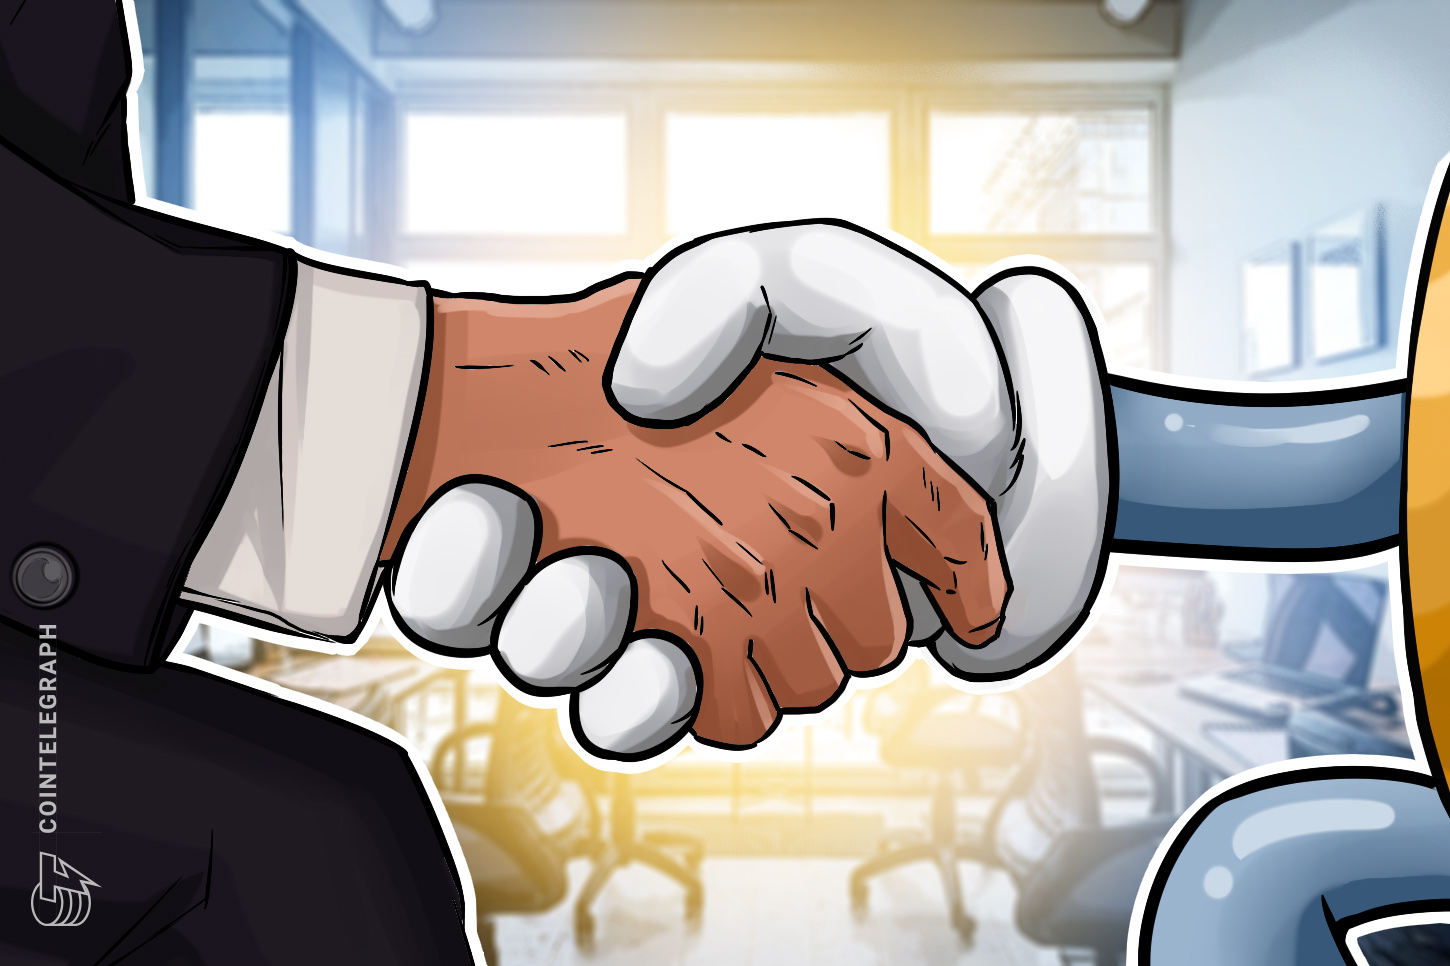 Western nations need better public-private cooperation on crypto, says Mohamed El-Erian